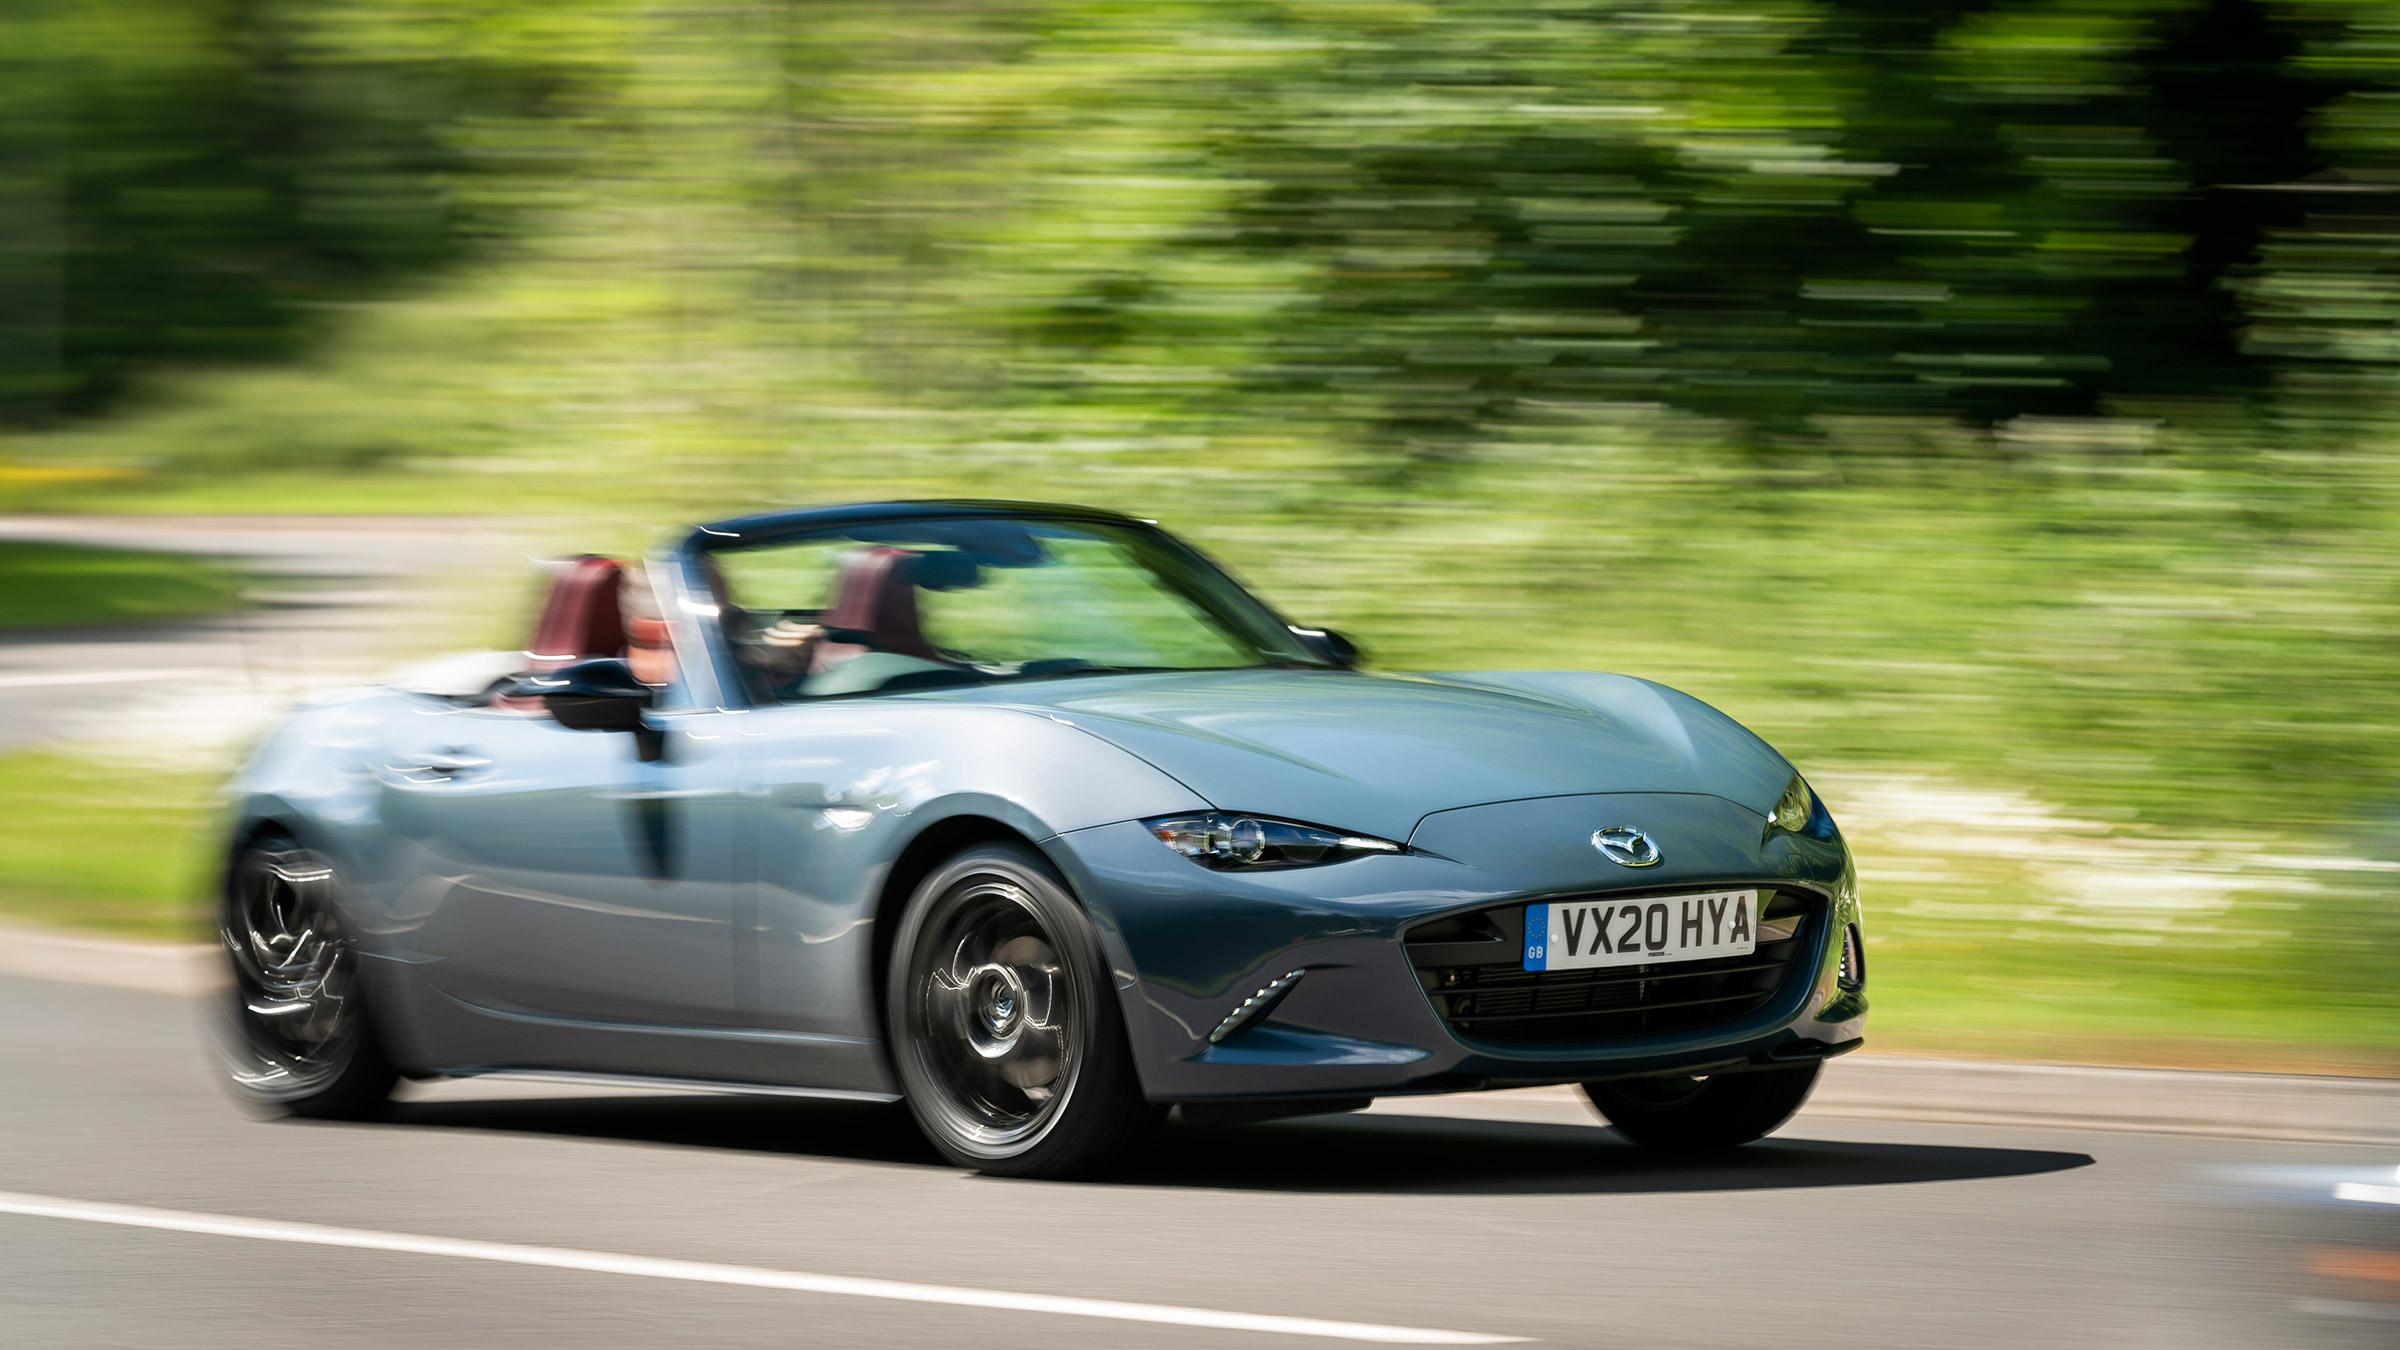 Mazda Mx 5 R Sport 2020 Review Floats Like A Butterfly But Stings Like One Too Evo